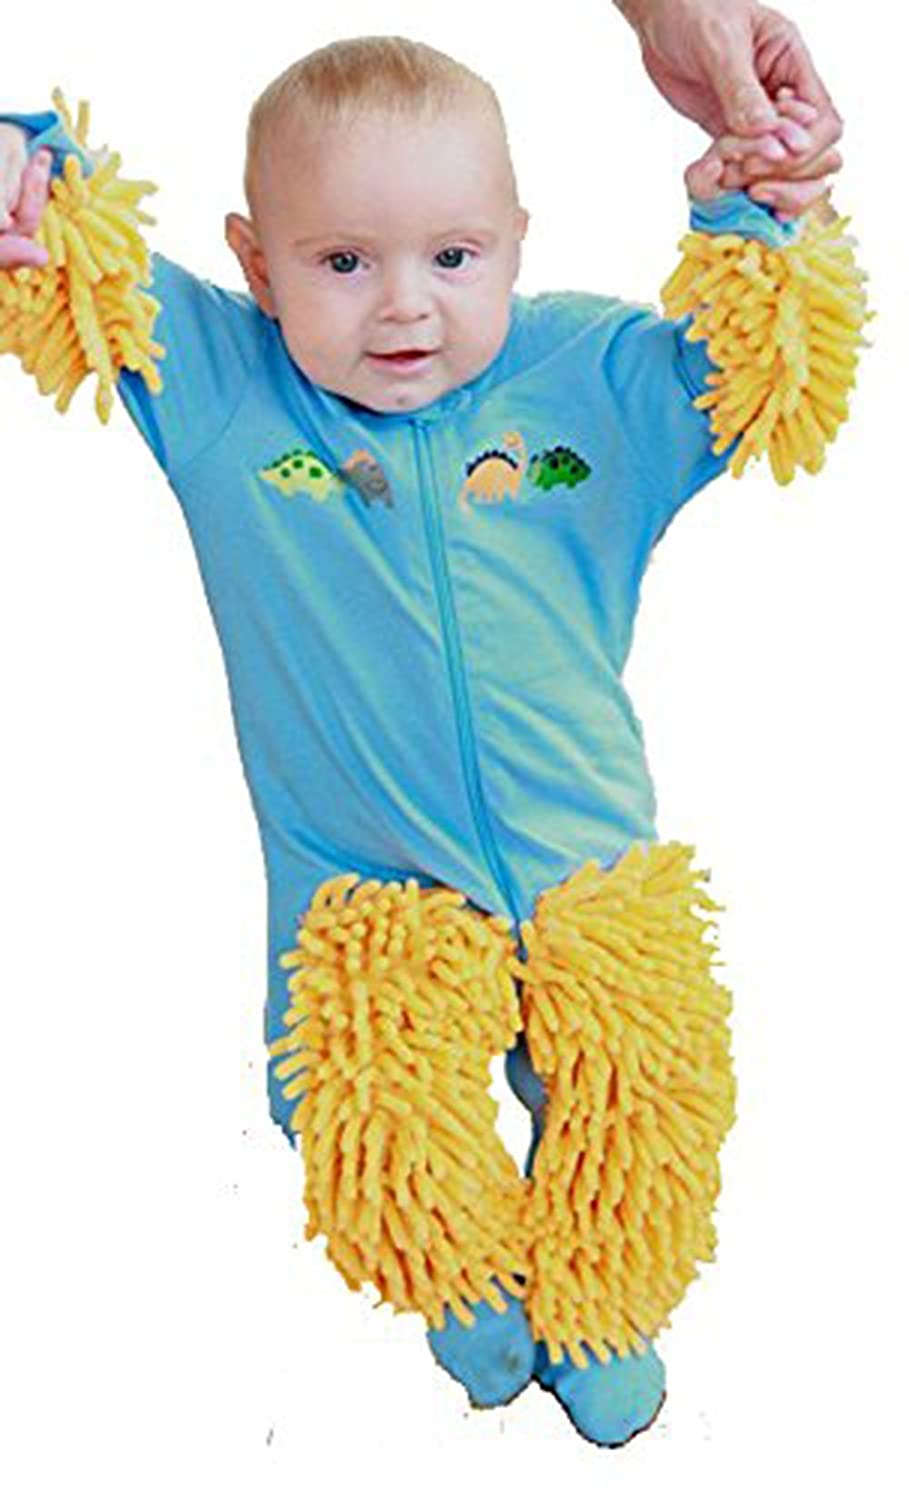 Amazon.com: Baby Mop - The Original As Seen on TV!: Clothing